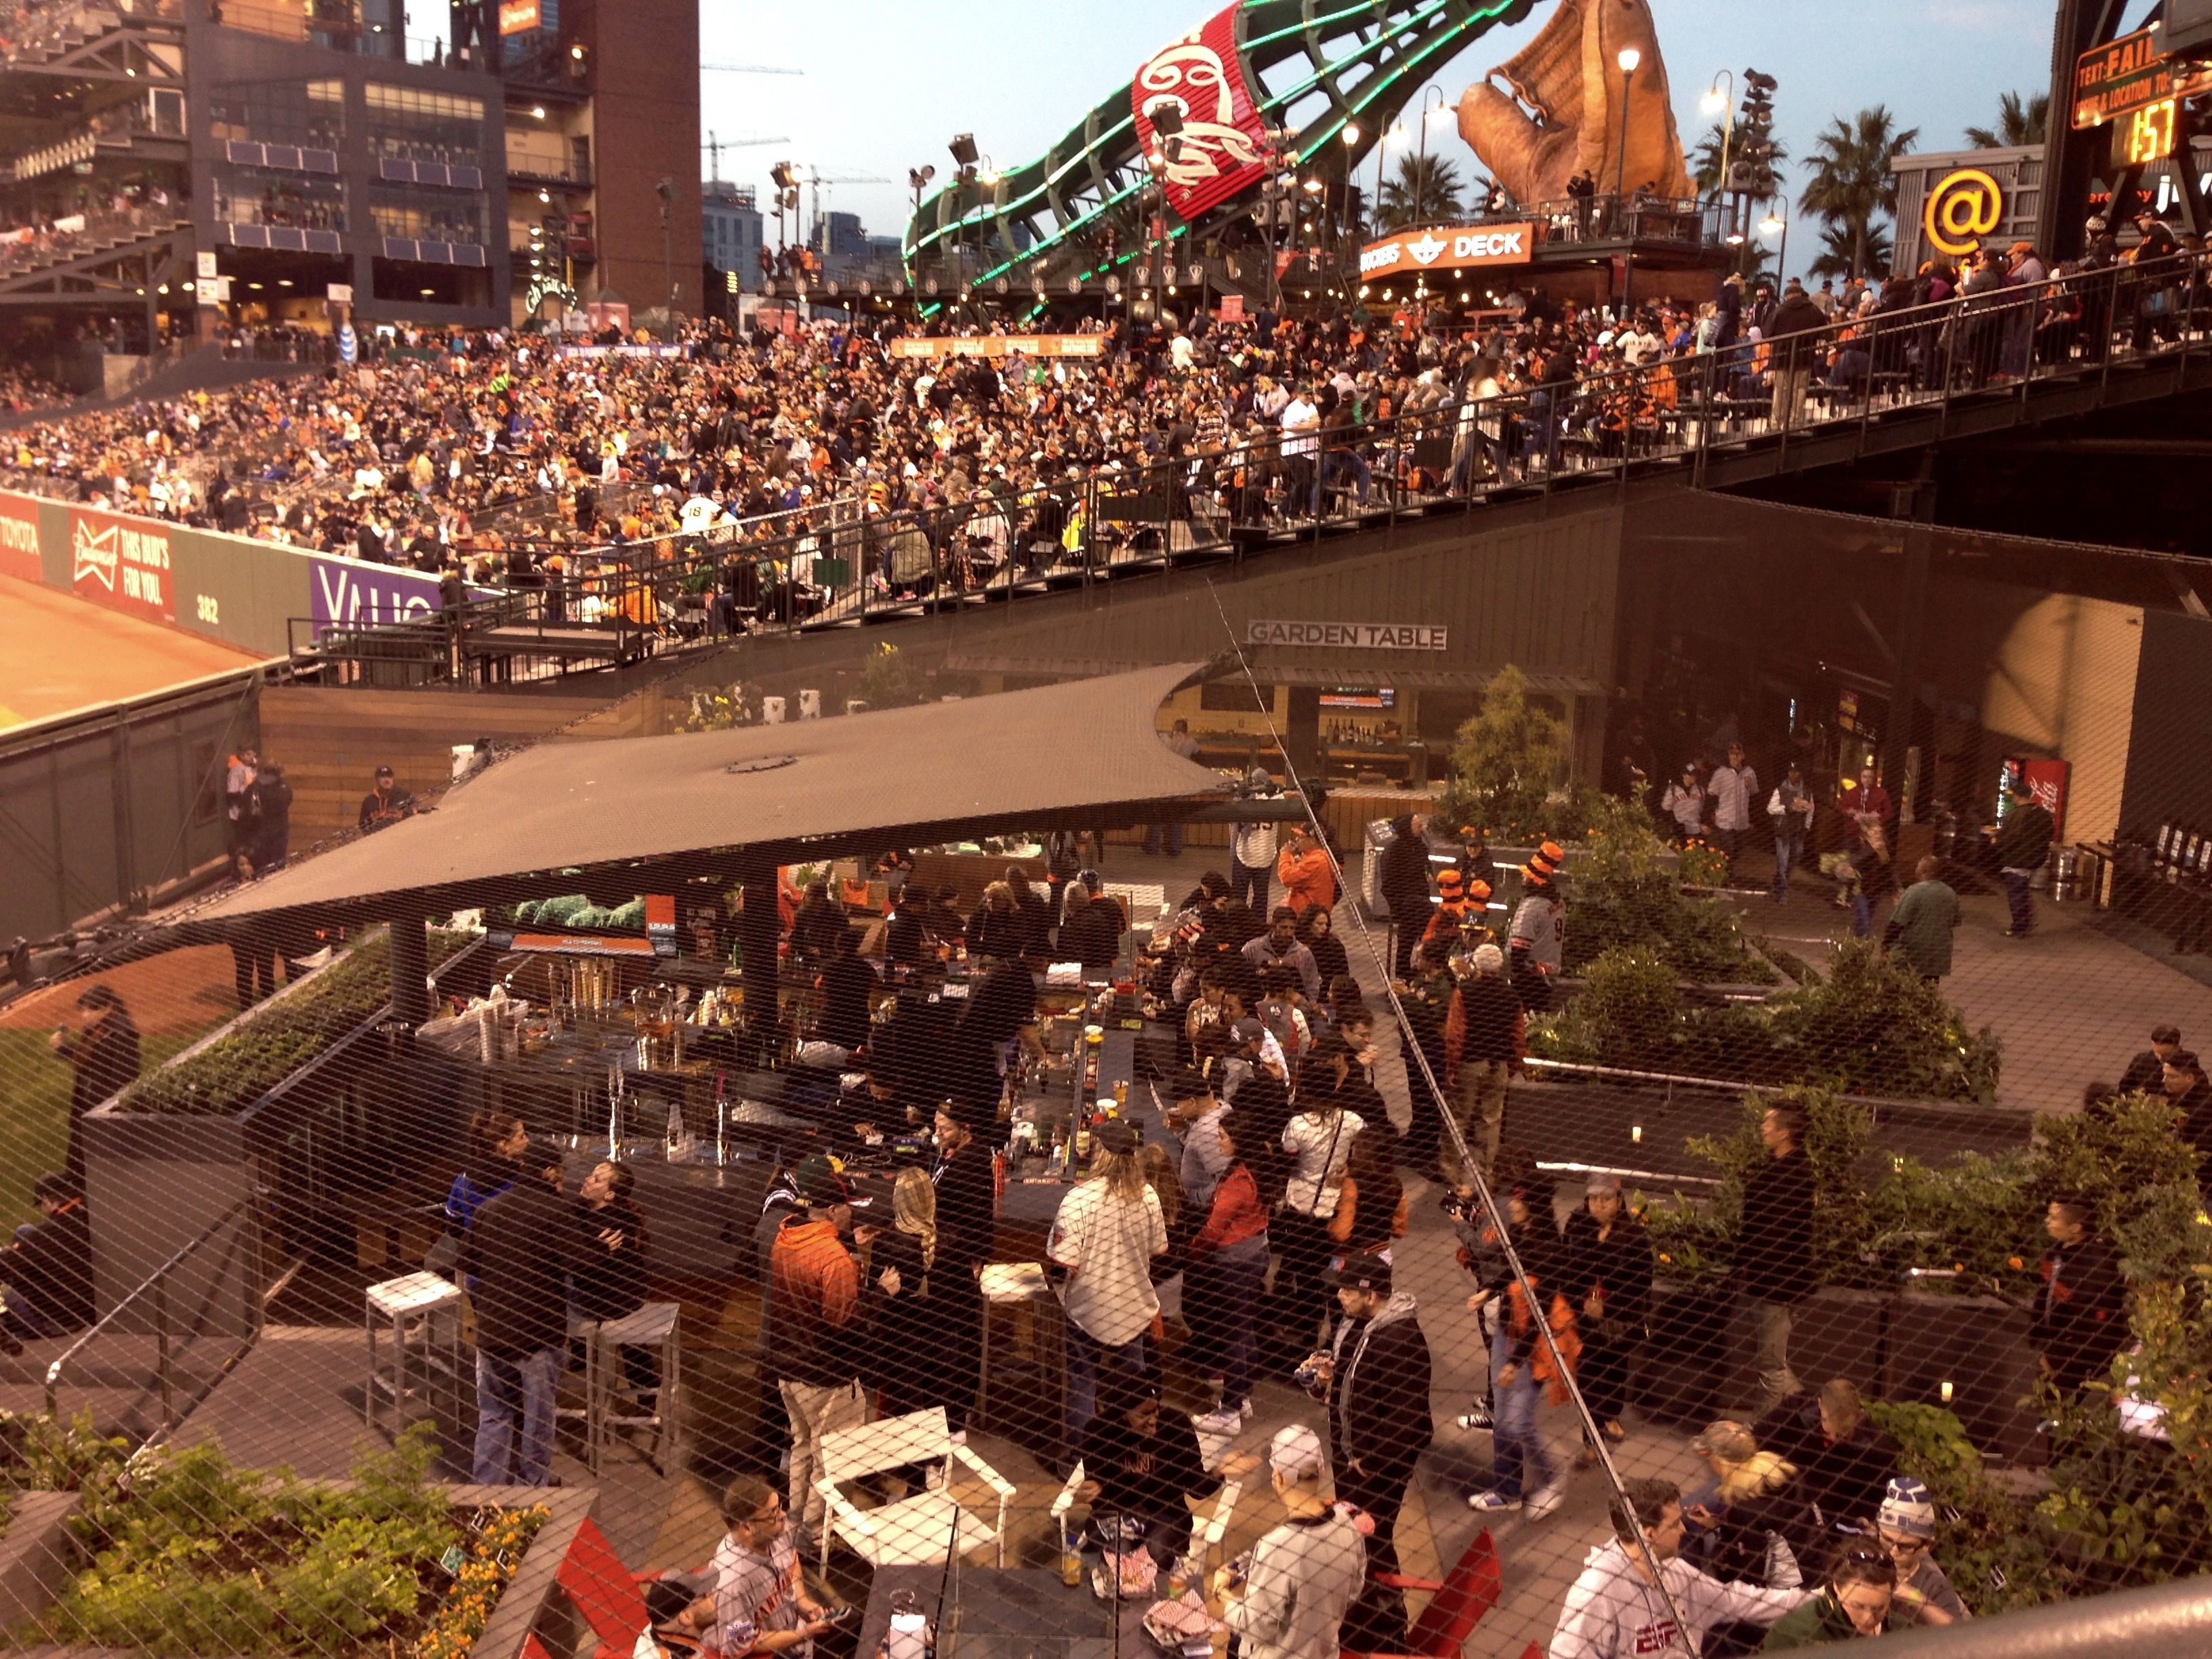 Last week the Garden at AT&T Park was filled with explosive energy ...